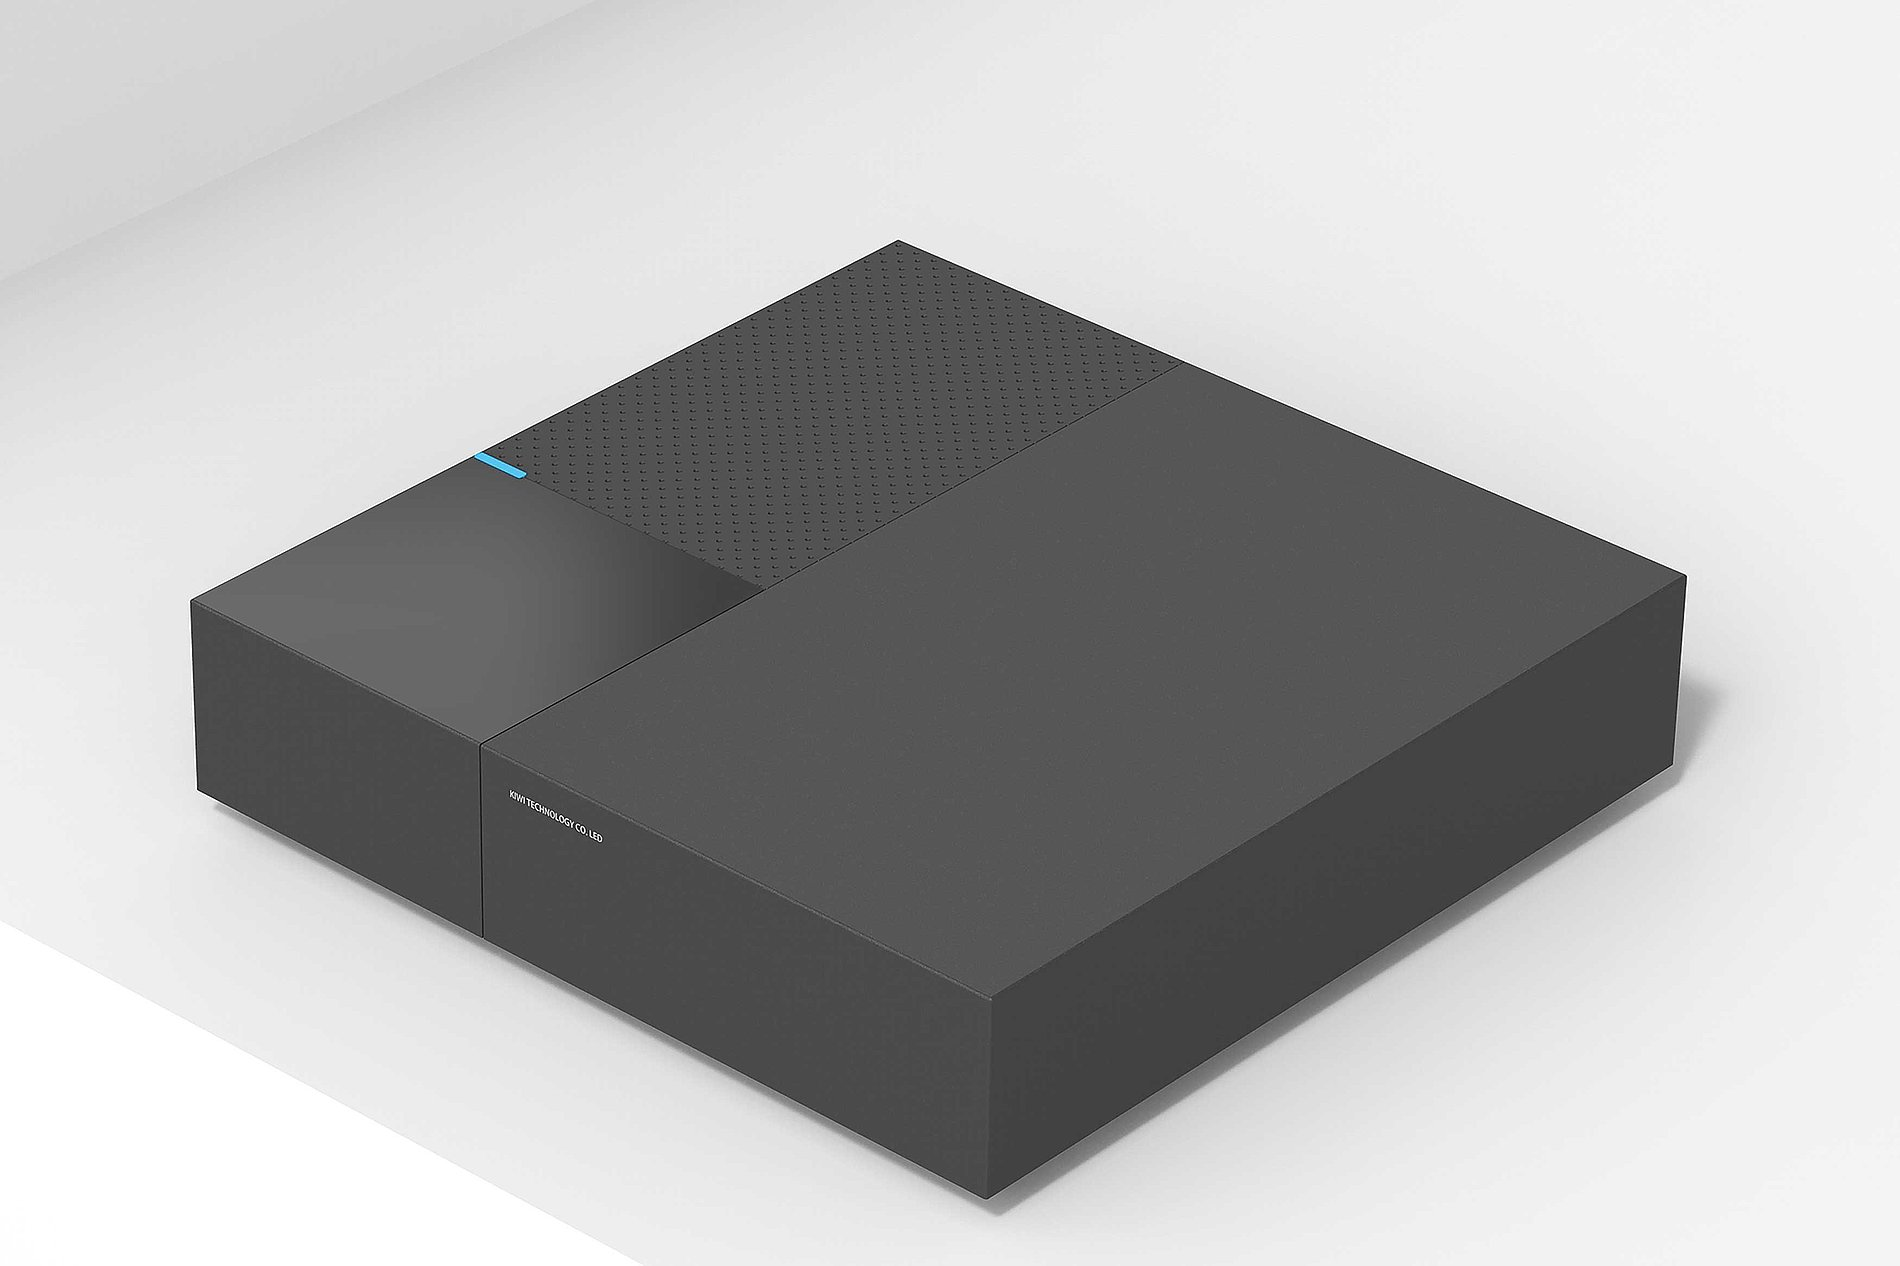 Kiwi TV Box | Red Dot Design Award